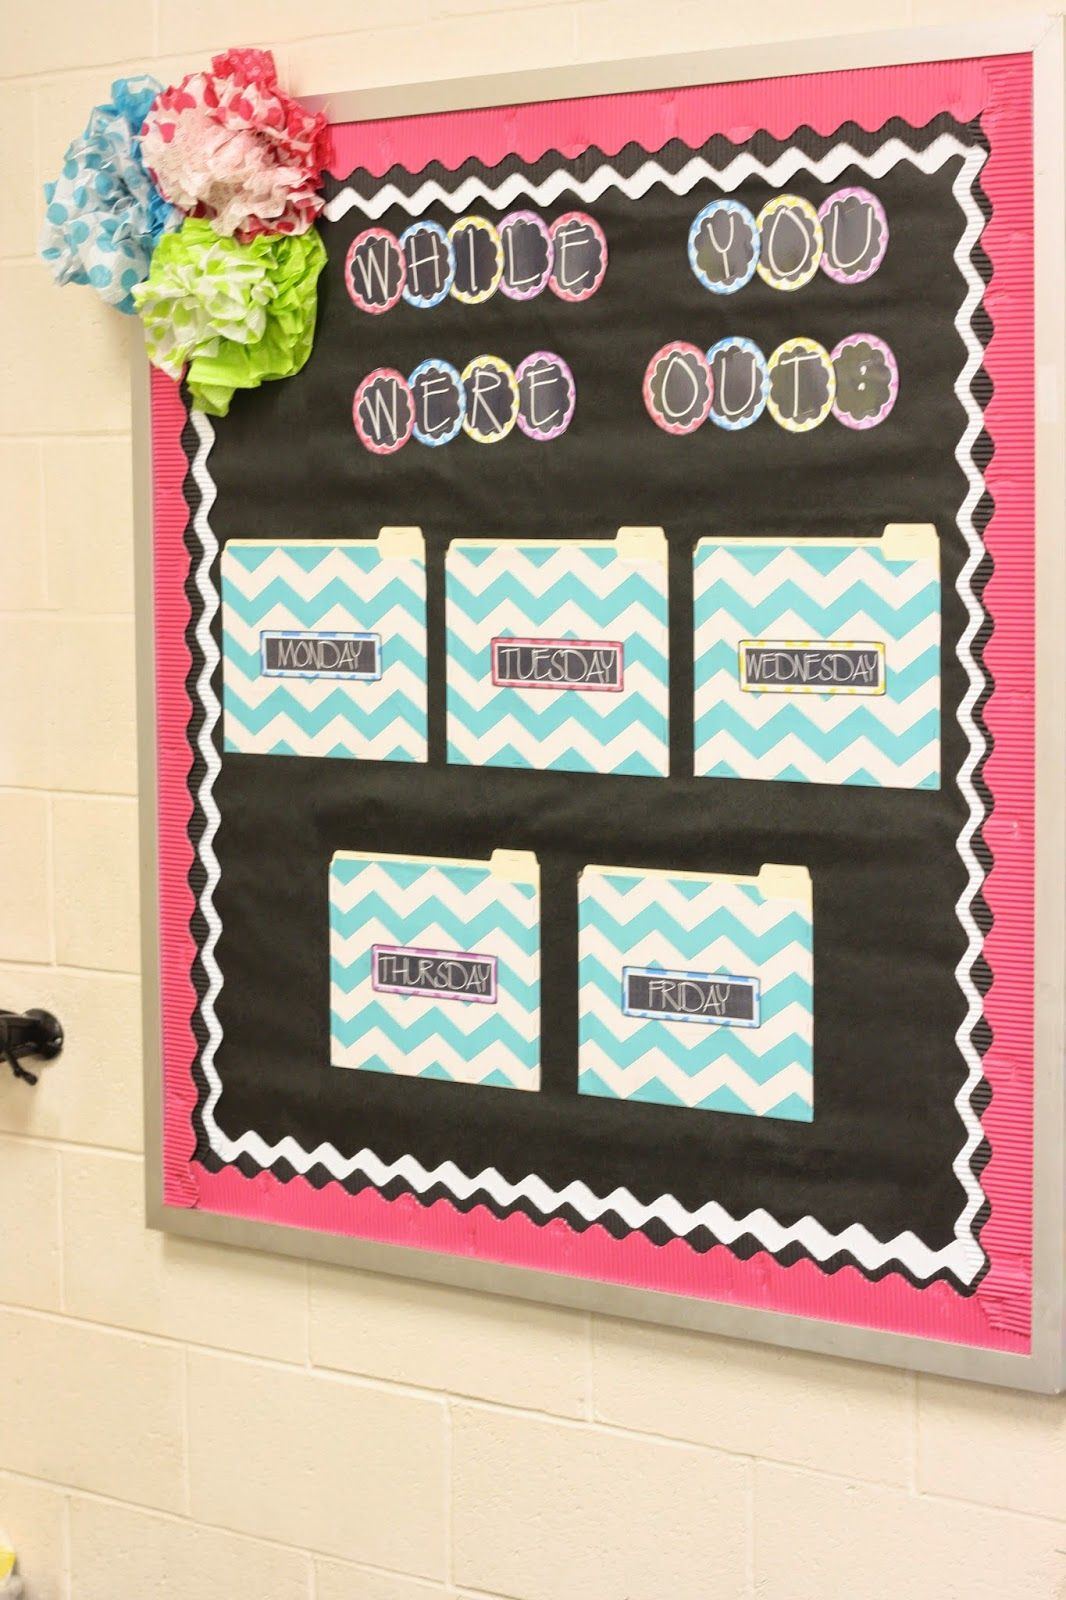 Creating A While You Were Out Bulletin Board